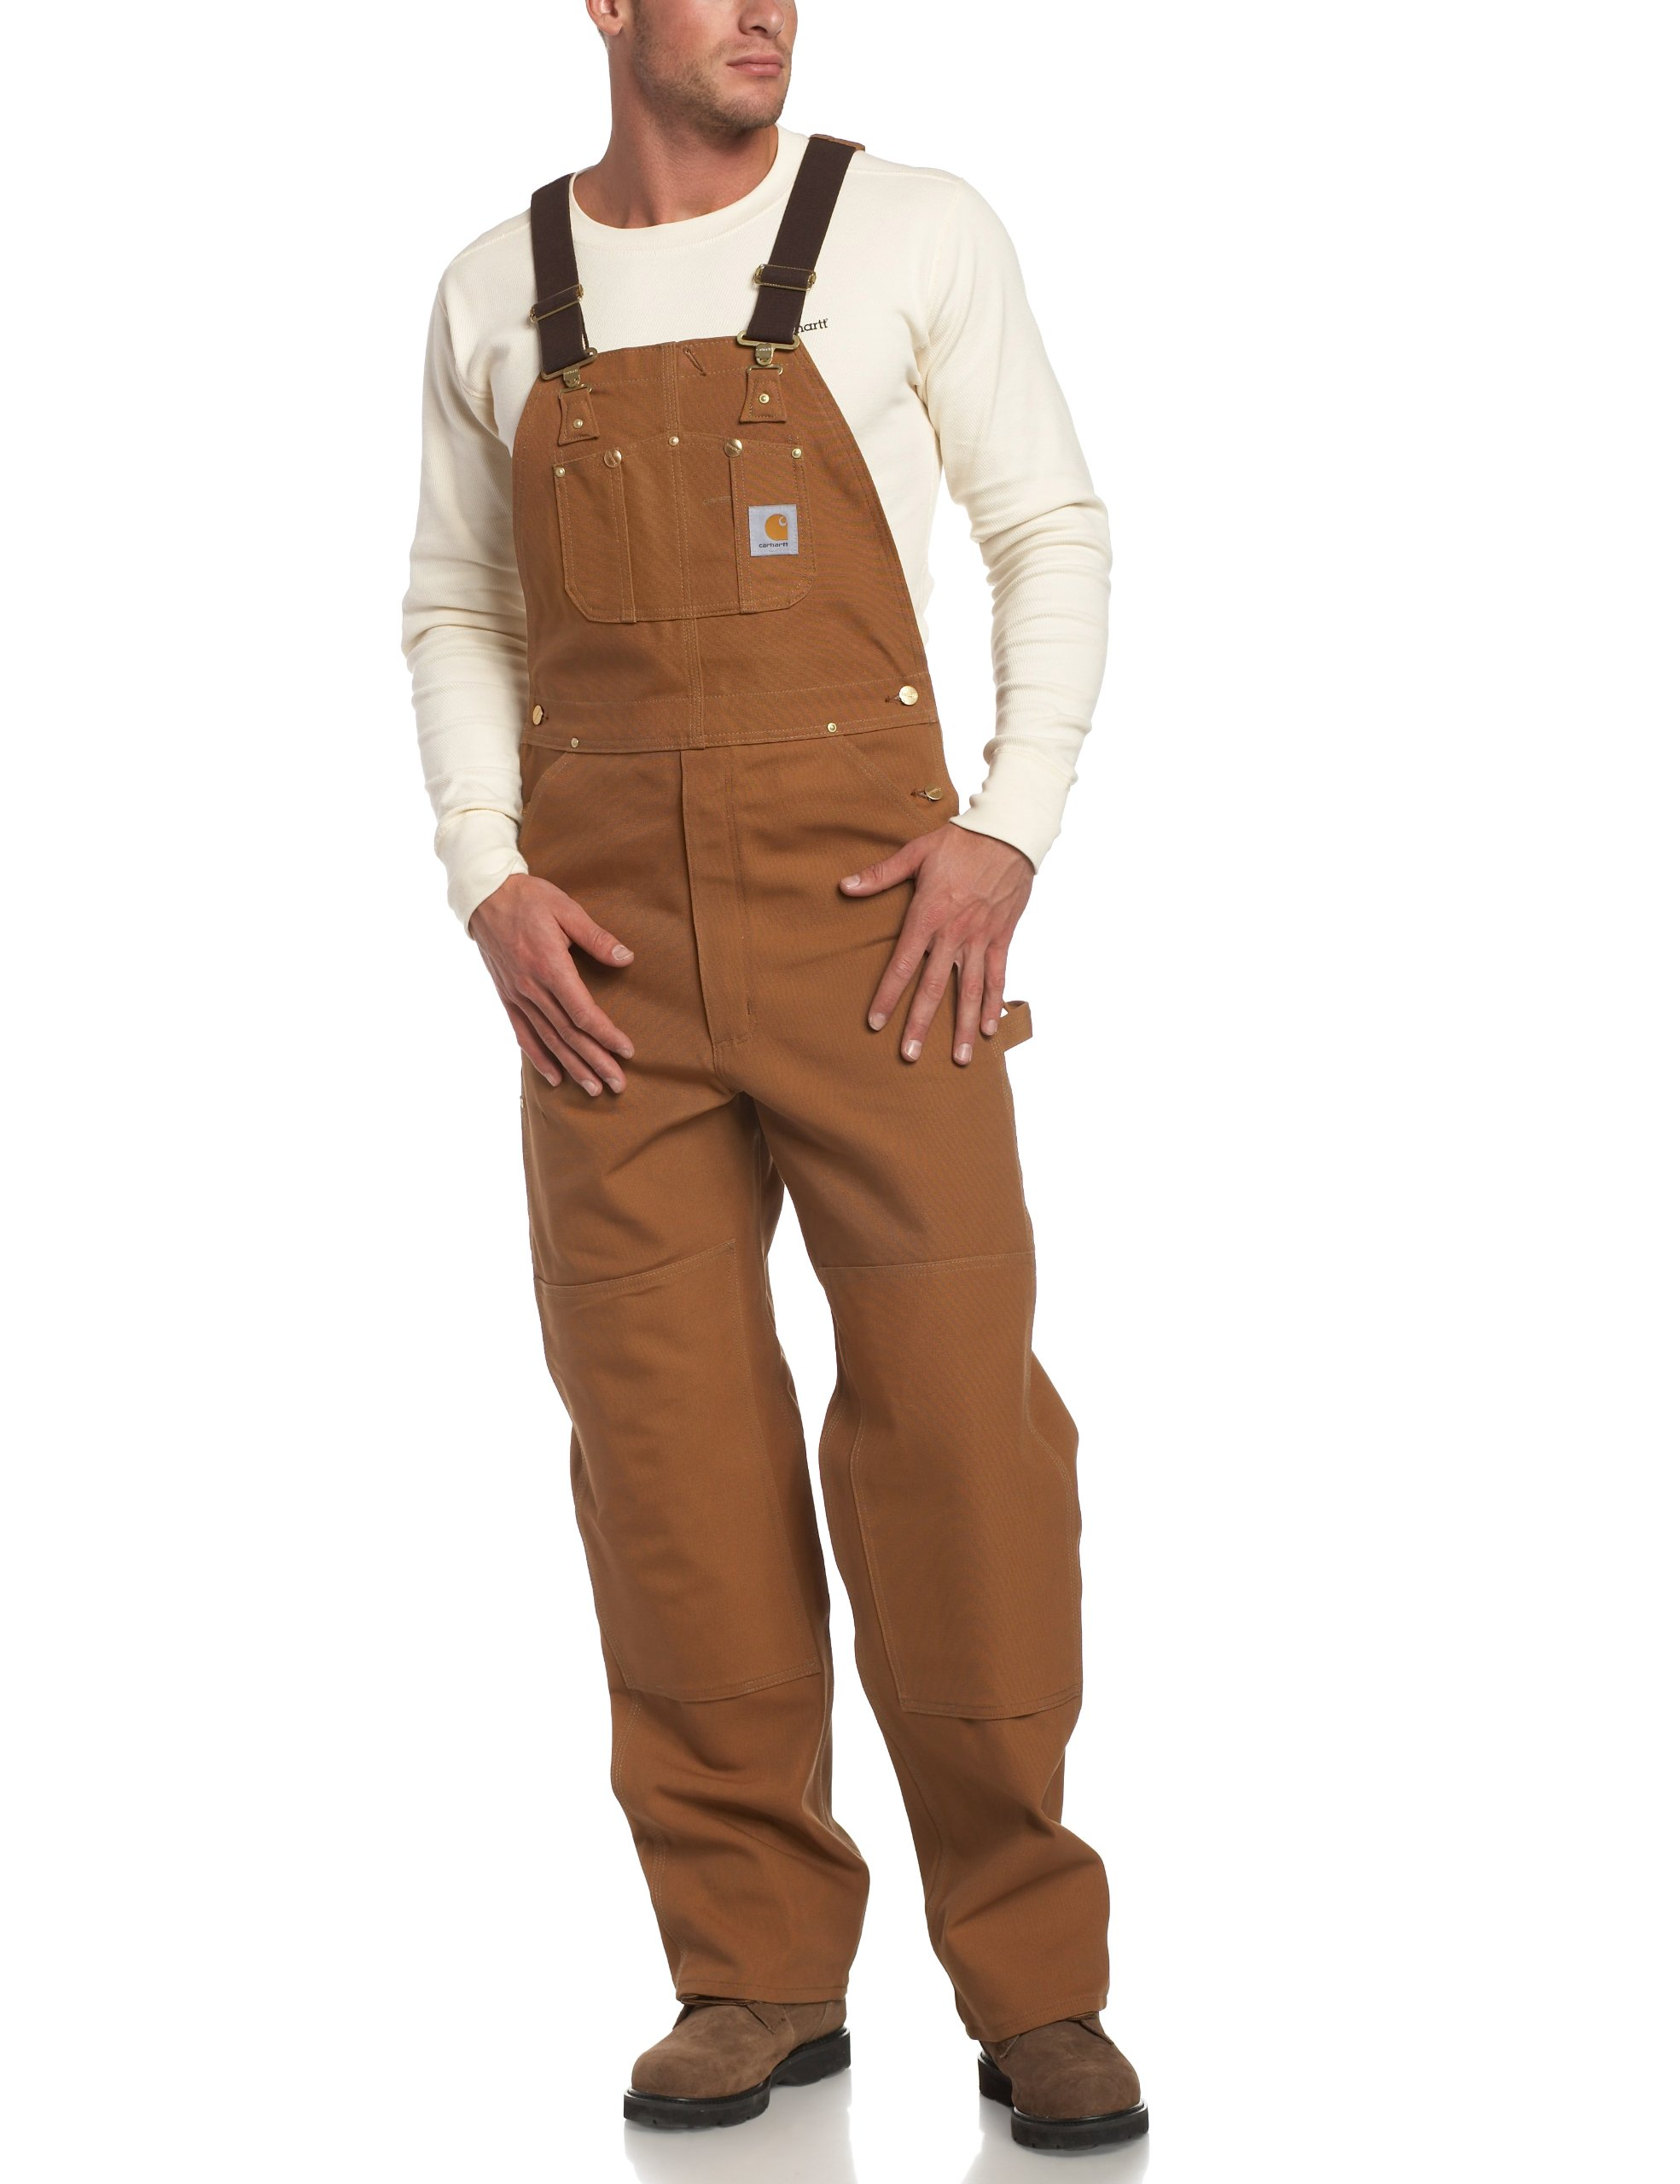 Carhartt Men's Duck Bib Overall Unlined R01,Brown,46 x 36